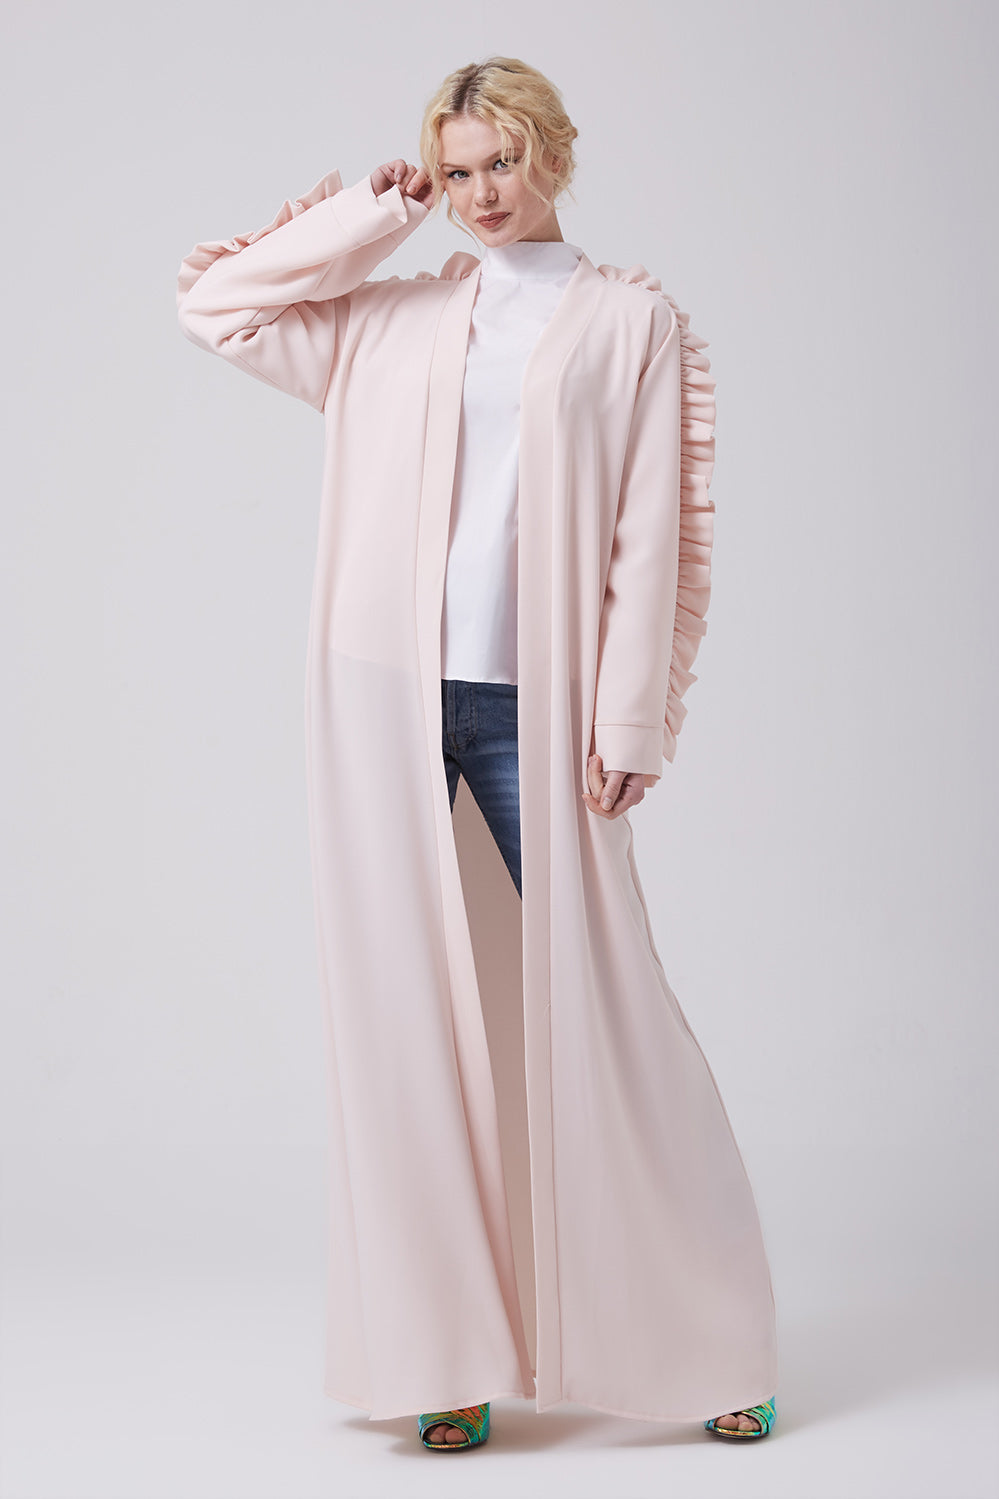 Feradje Pink Blush Open Abaya with Frills on Shoulders